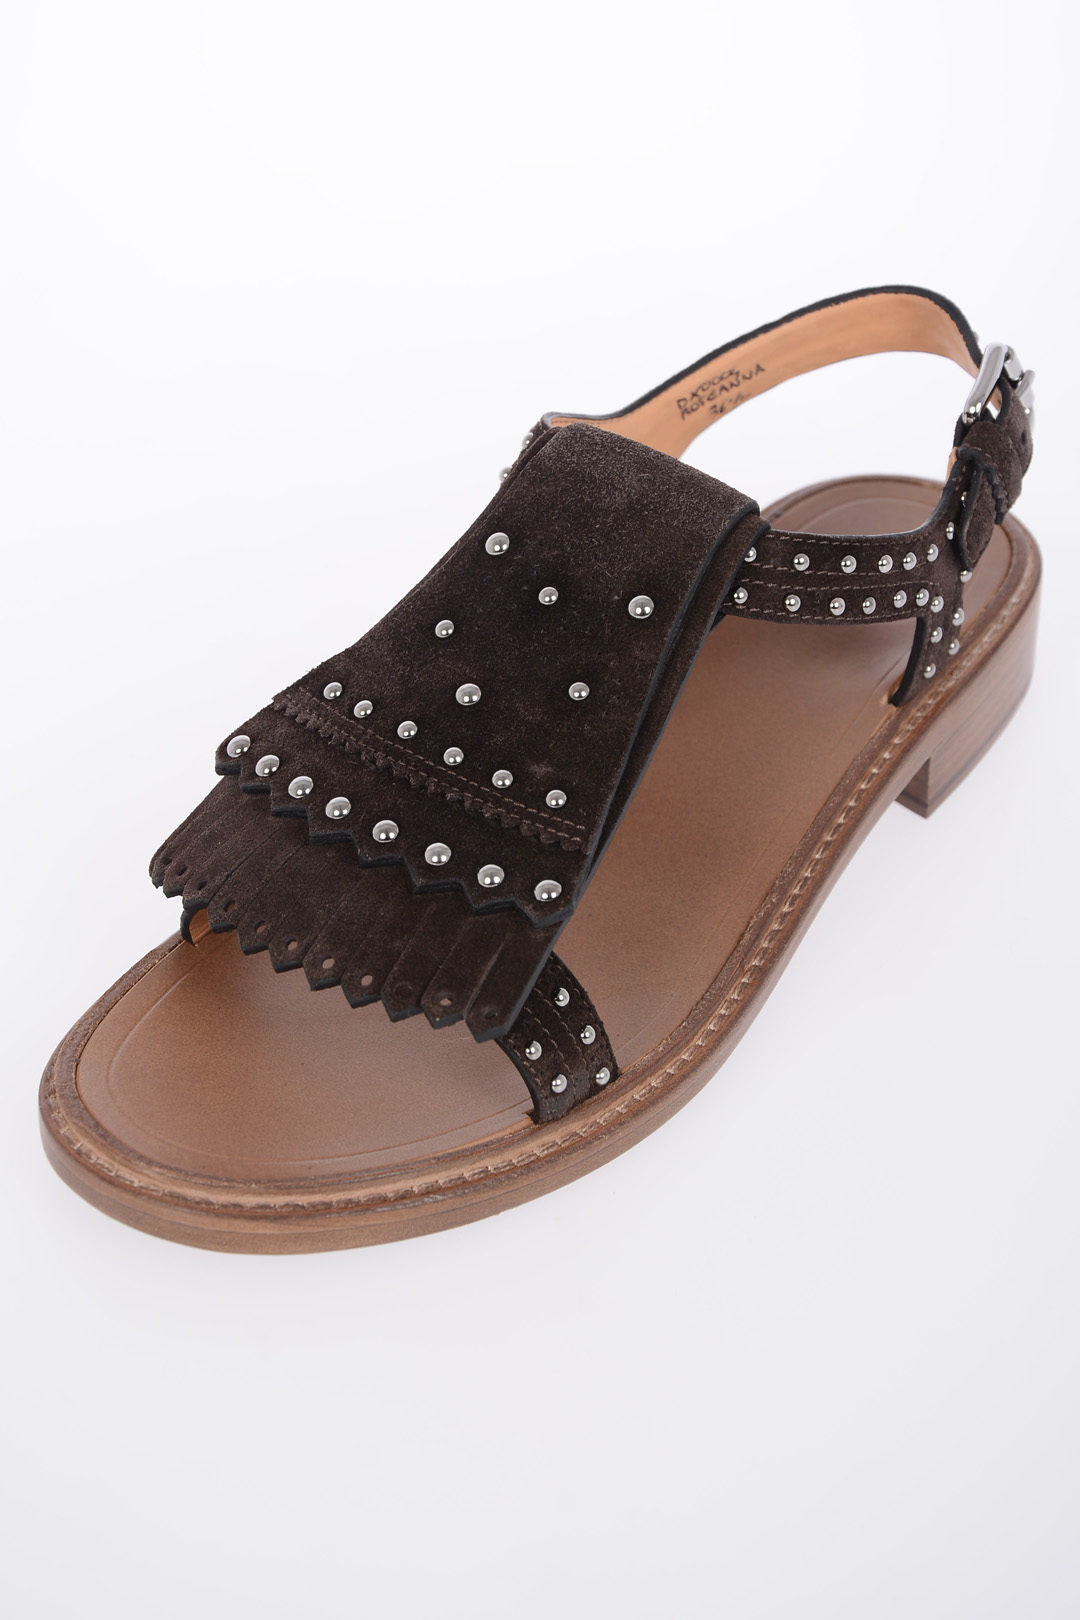 In Lj543ar Borchie Con S Outlet Suede Glamood Donna Church Sandali lJTK1cFu3